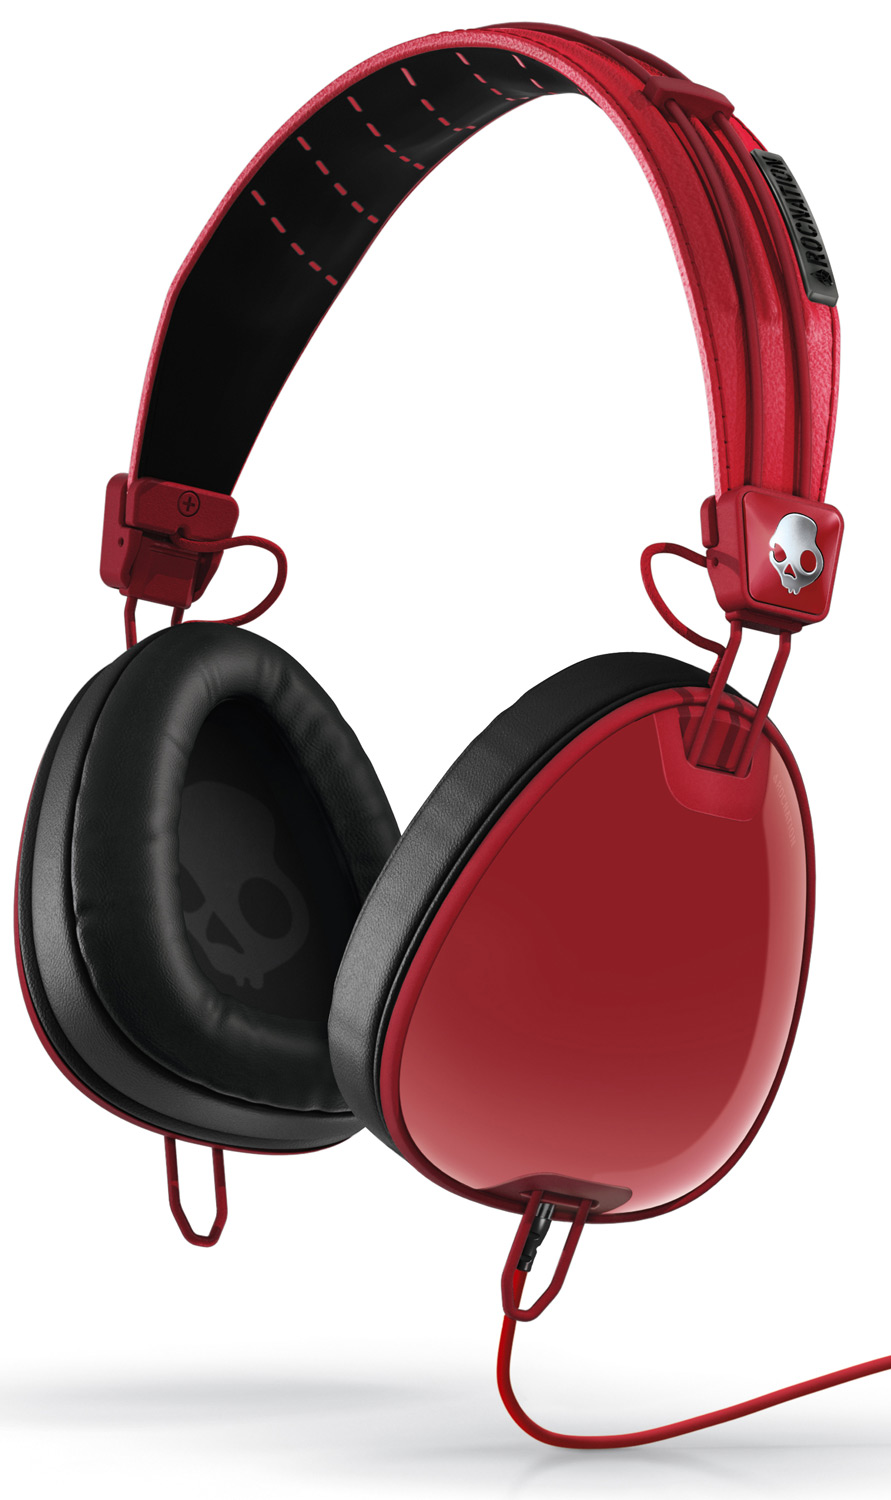 Entertainment The Skullcandy Aviator w/ Mic 3 Headphones are the ones you need to appreciate your music at new levels! Designed with comfort in mind, these are made with soft leather ear pillows so you can use them for longer periods of time. Durable materials ensure that you''ll be wearing these headphones for years to come. These are built with rich bass components so you can almost feel the tunes. Quite simply, the Skullcandy Aviator headphones provide the best sound for an excellent price!Key Features of the Skullcandy Aviator w/ Mic 3 Headphones:  Mic3 Volume Control   Take/Make calls   Play/Pause   Track Control   Works with most smart phones  Stashable  Carrying case  Driver: 40mm - $89.95